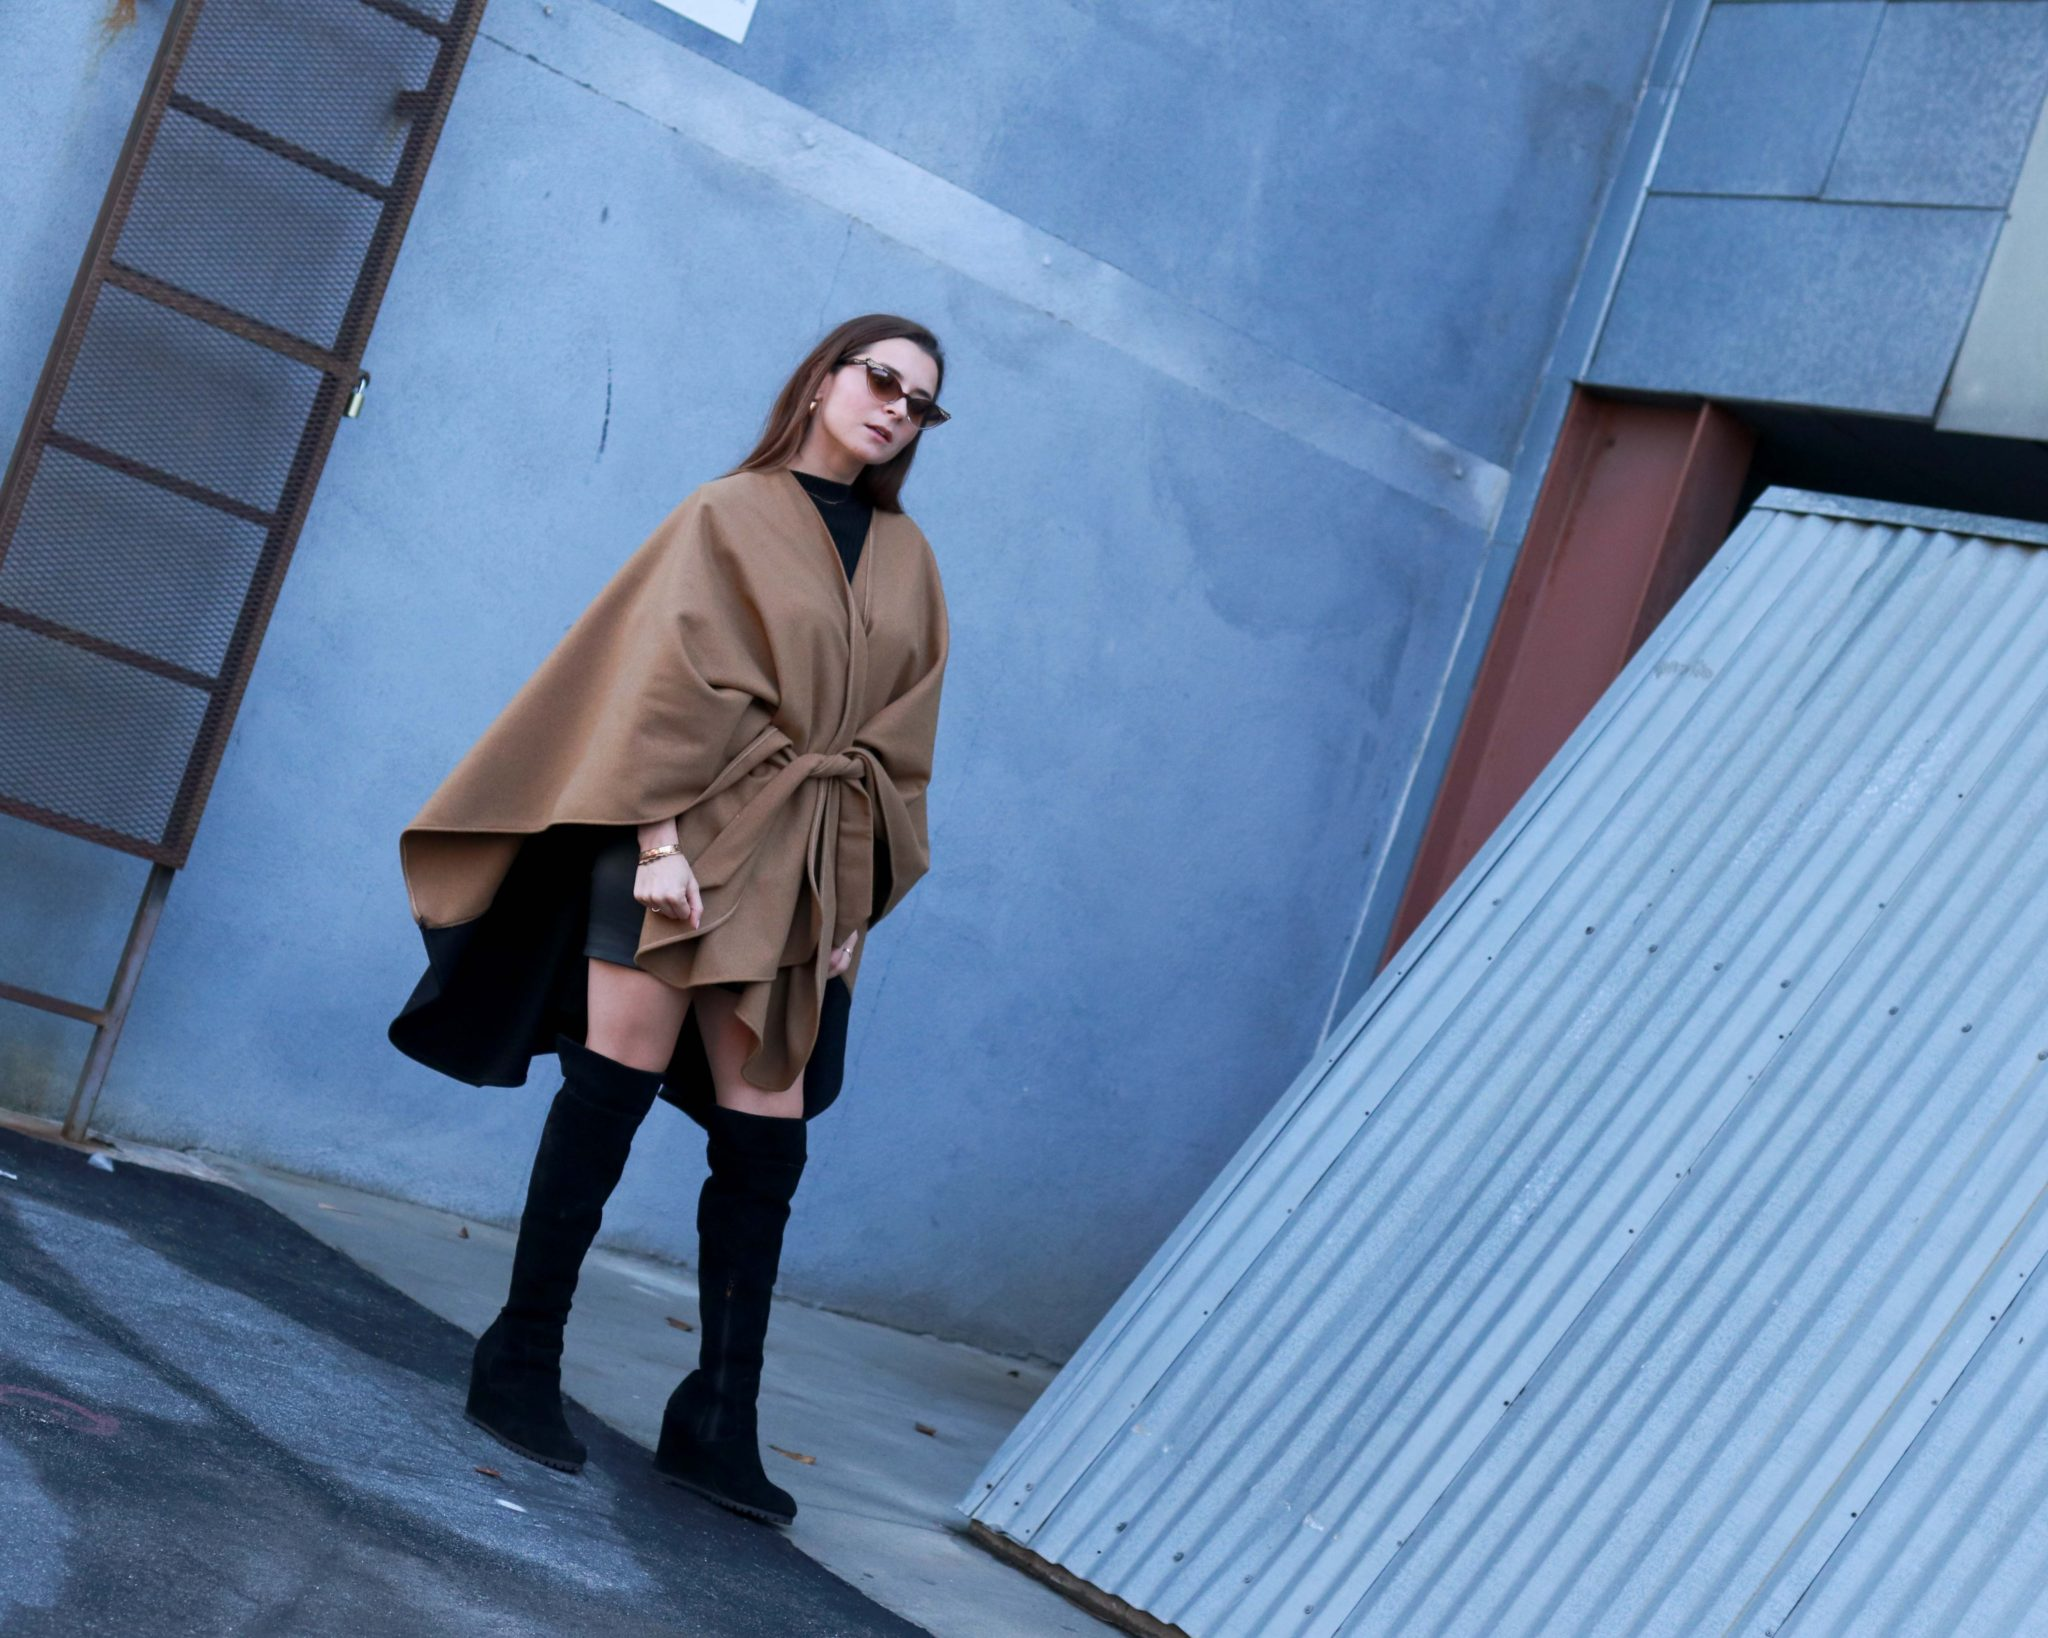 Donni Beige Cape: Swap your beige coat for a beige cape - Donni Shop Review and Donni Coupon Code